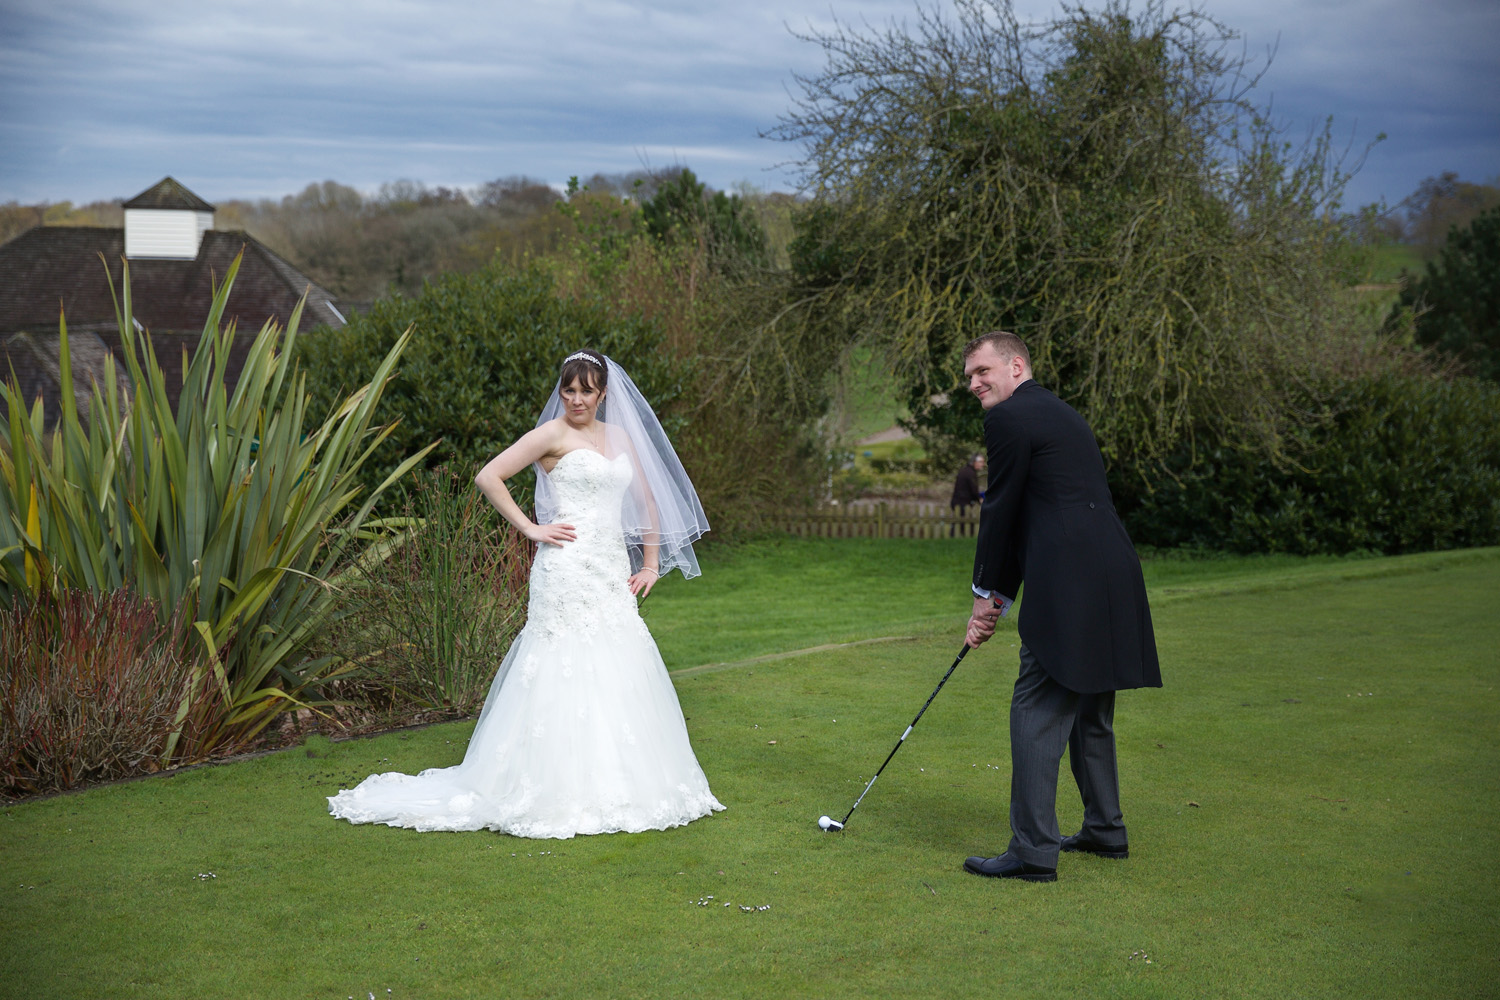 Sandford_Springs_Wedding_Photographer_Newbury_030.jpg